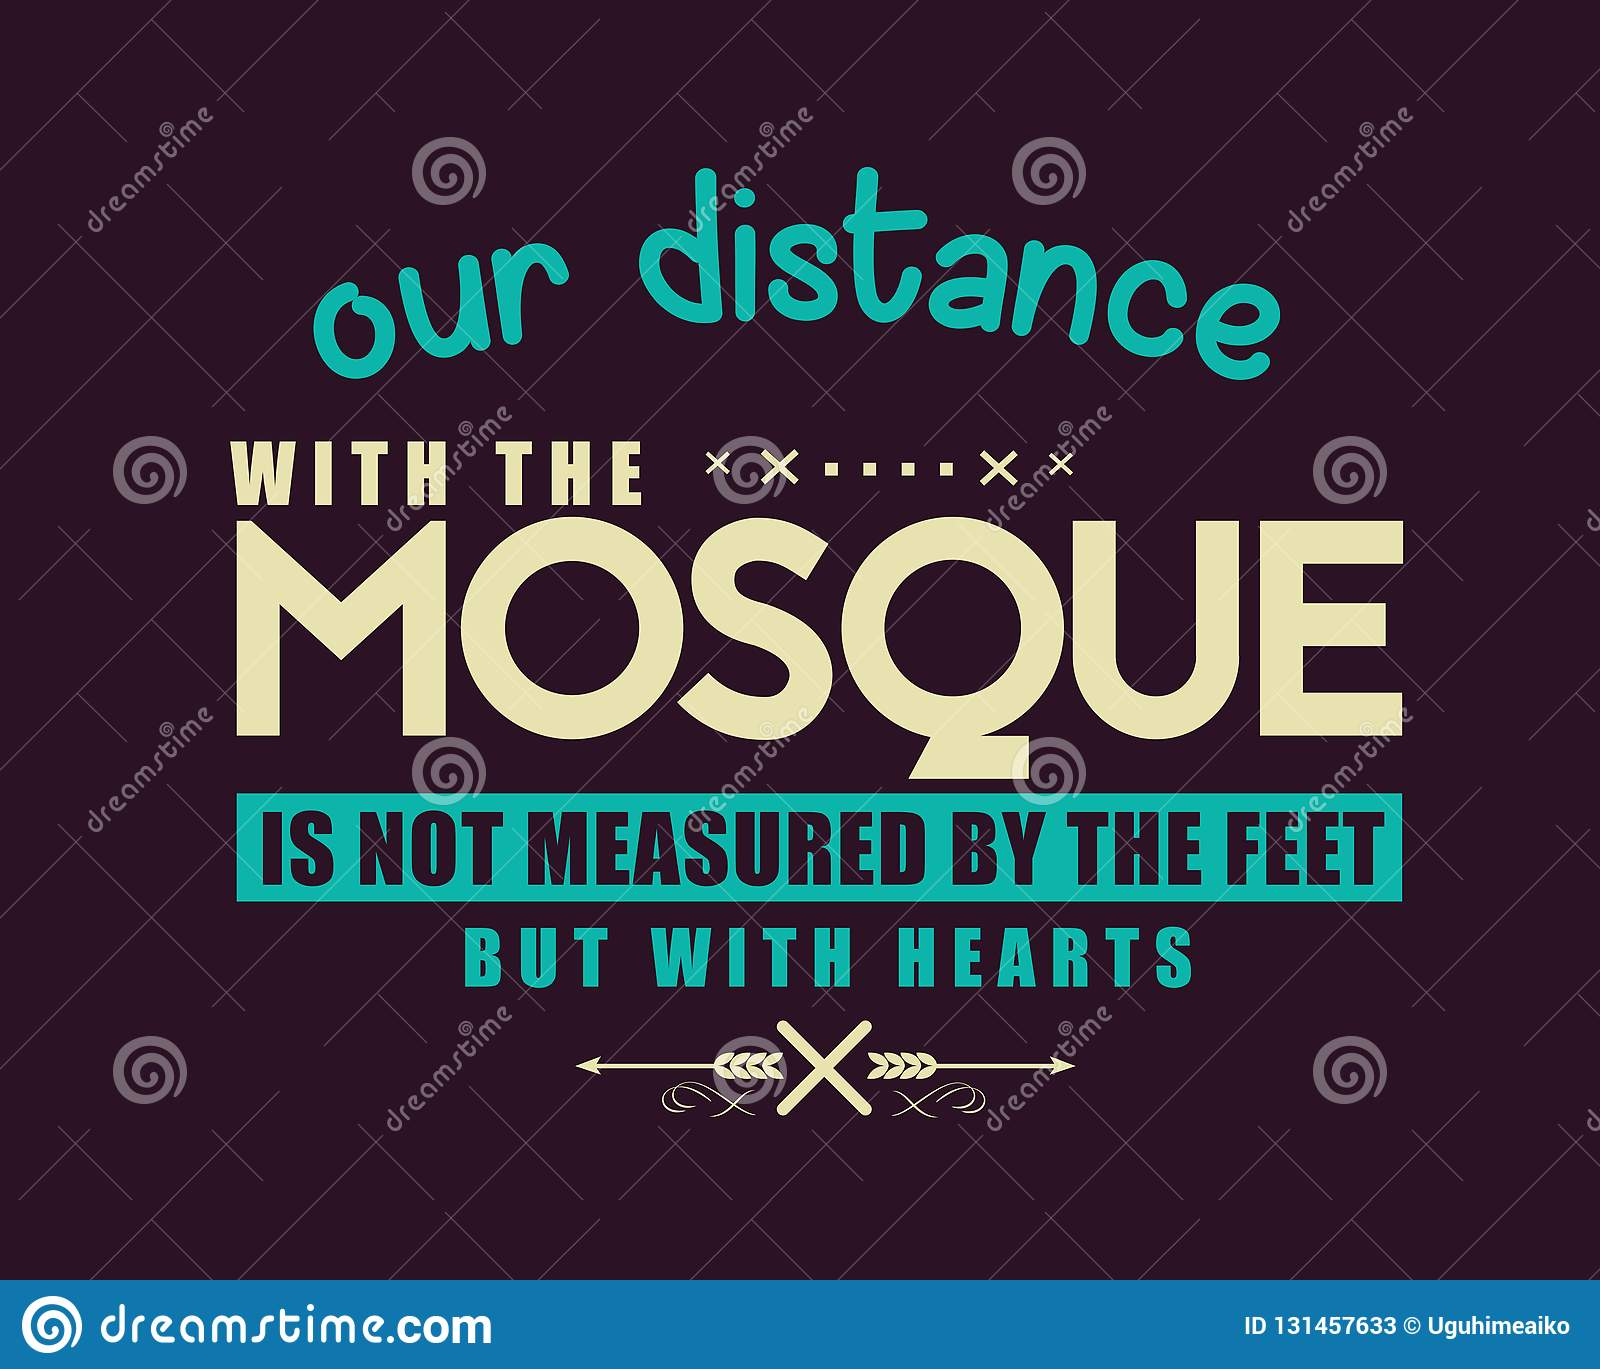 Our distance with the mosque is not measured by the feet but with hearts